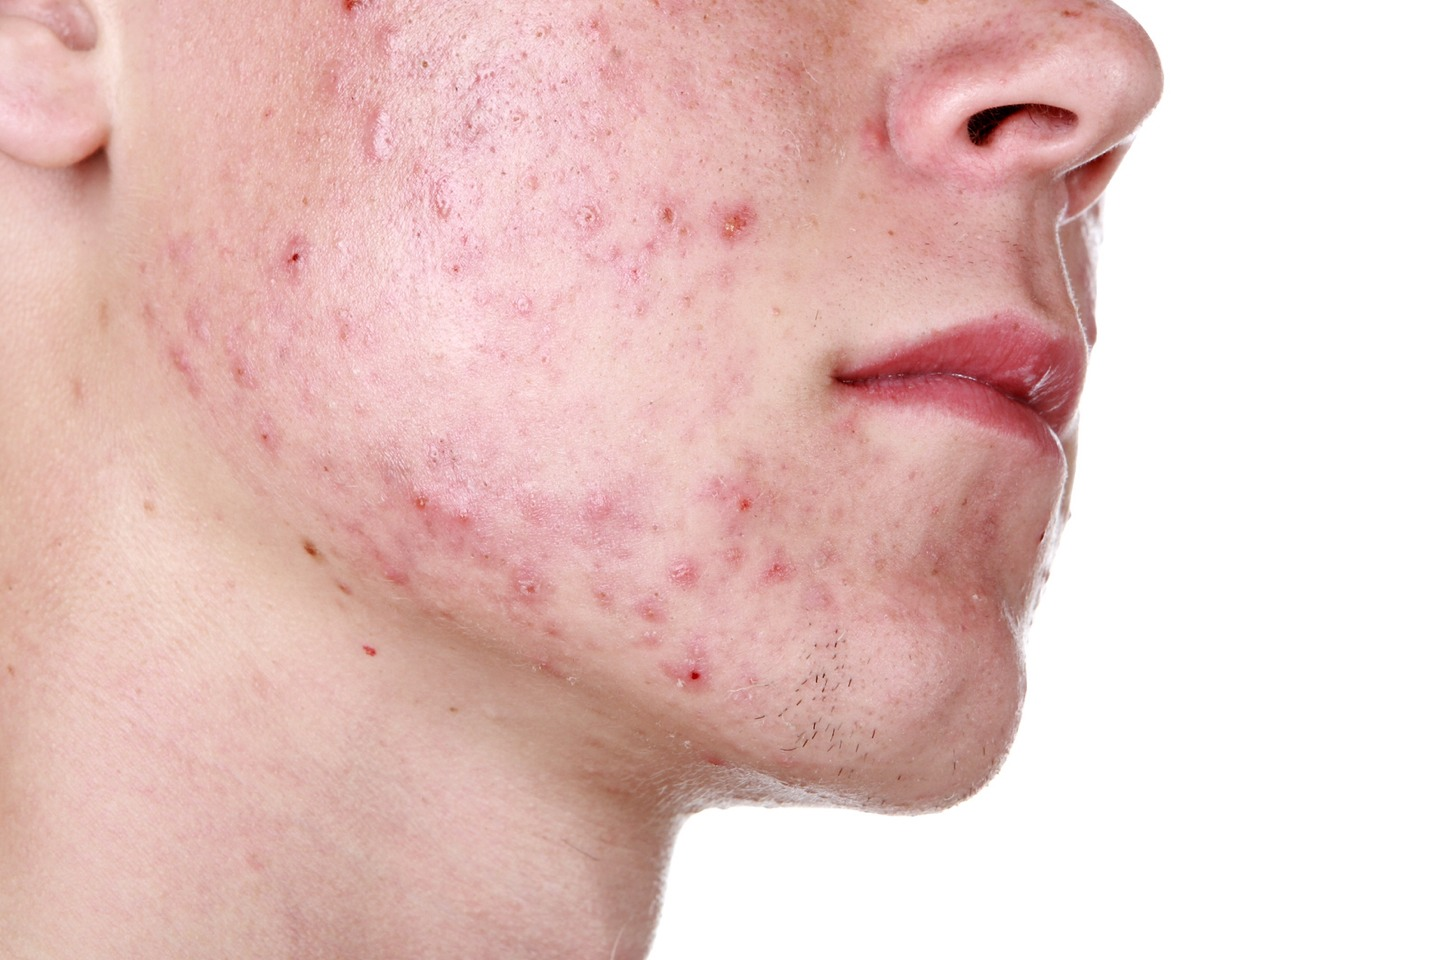 Use cotton balls and rubbing alchol to get rid of acne works awesome! And super cheep